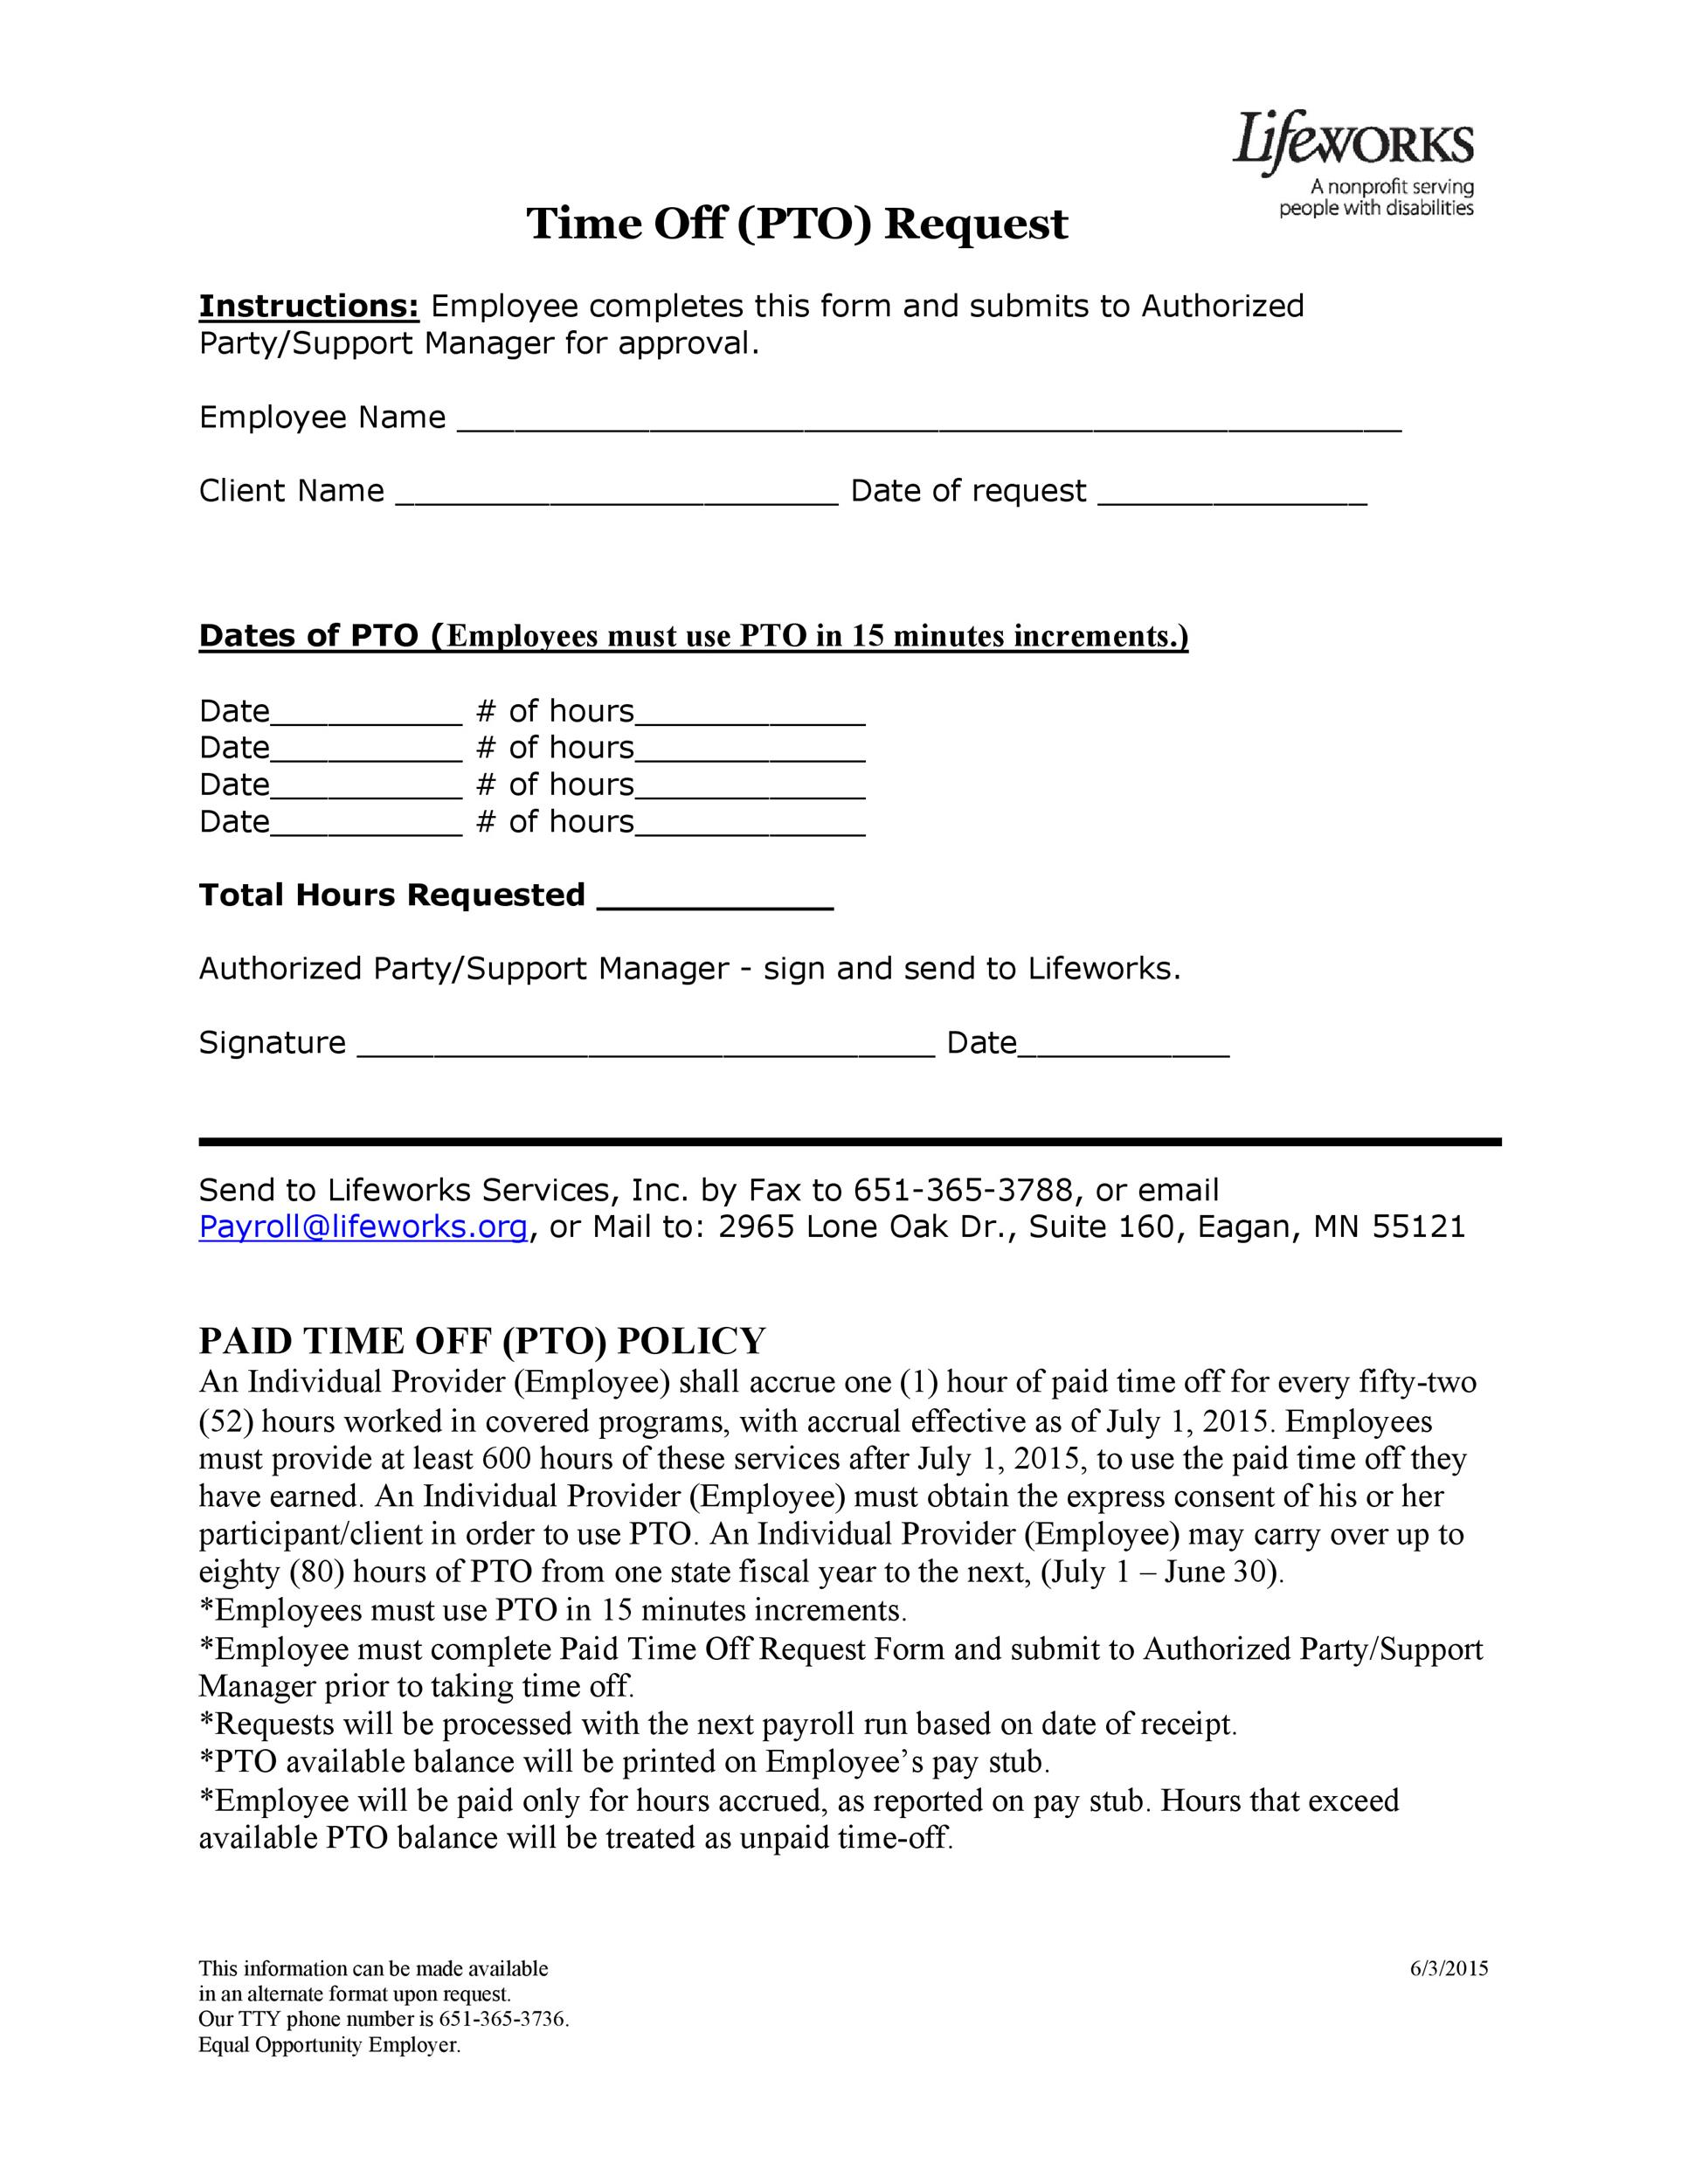 40+ Effective Time Off Request Forms  Templates - Template Lab - time off request forms